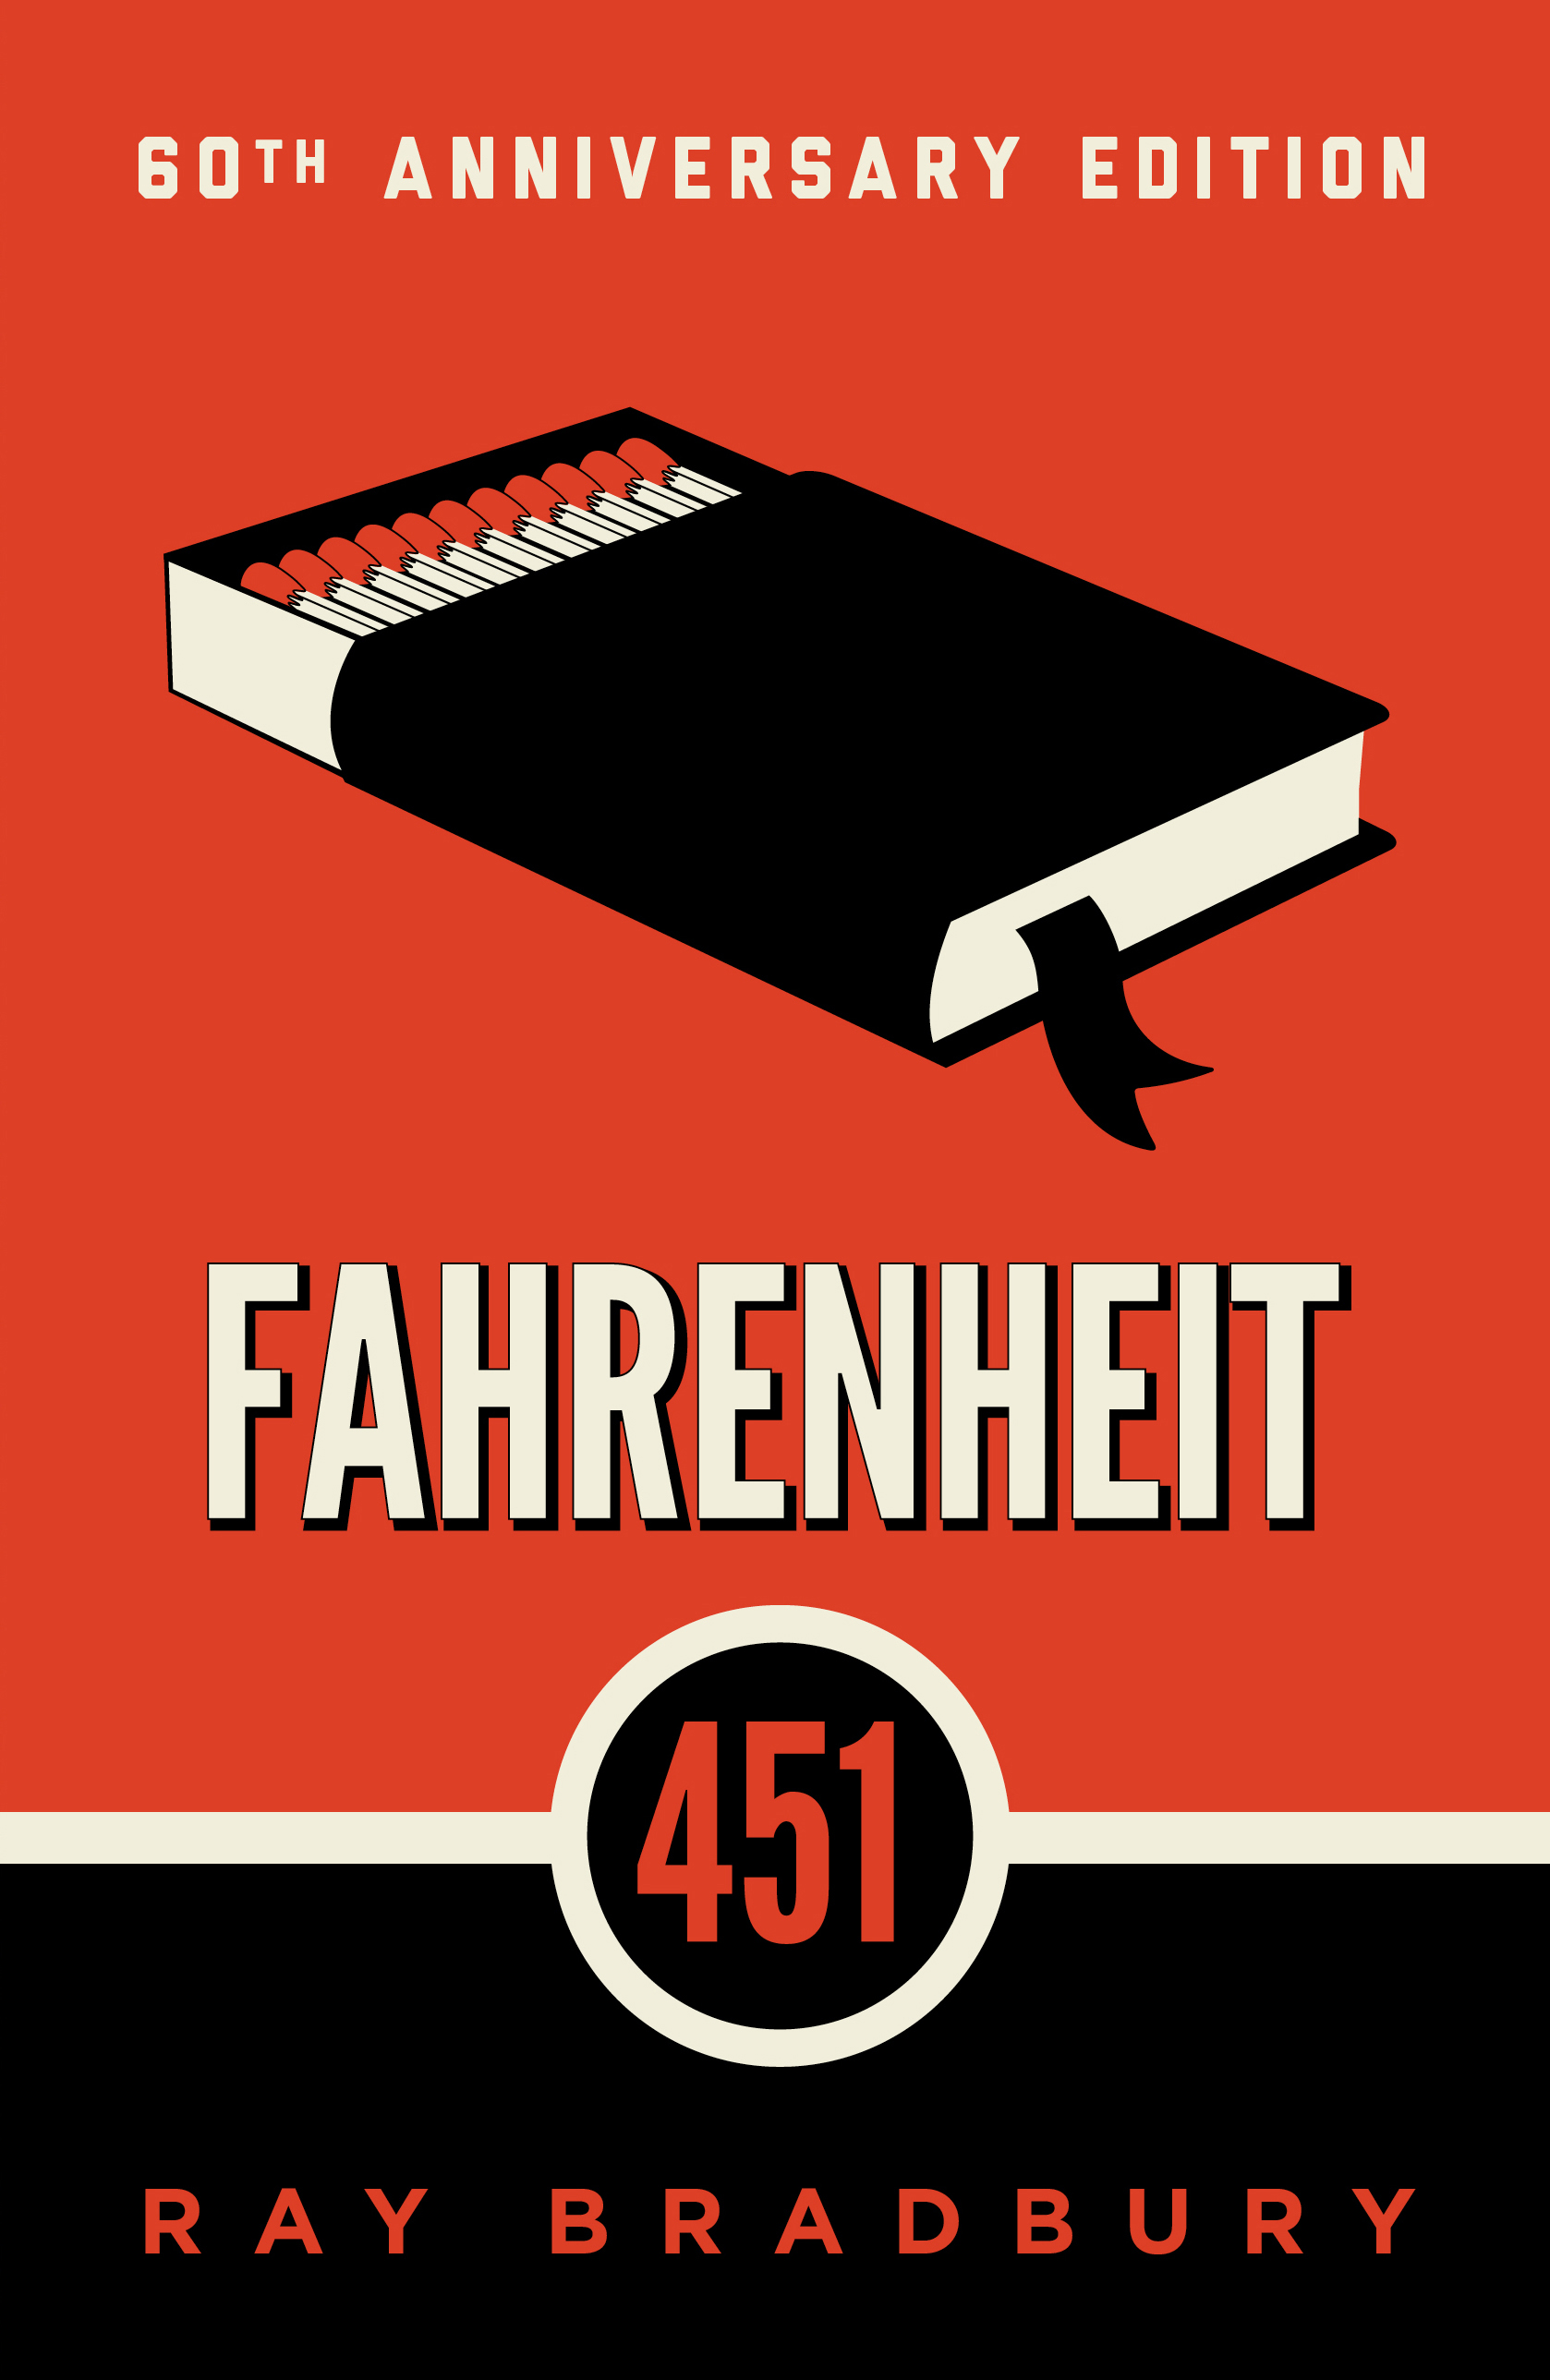 Writing Prompts for Fahrenheit 451